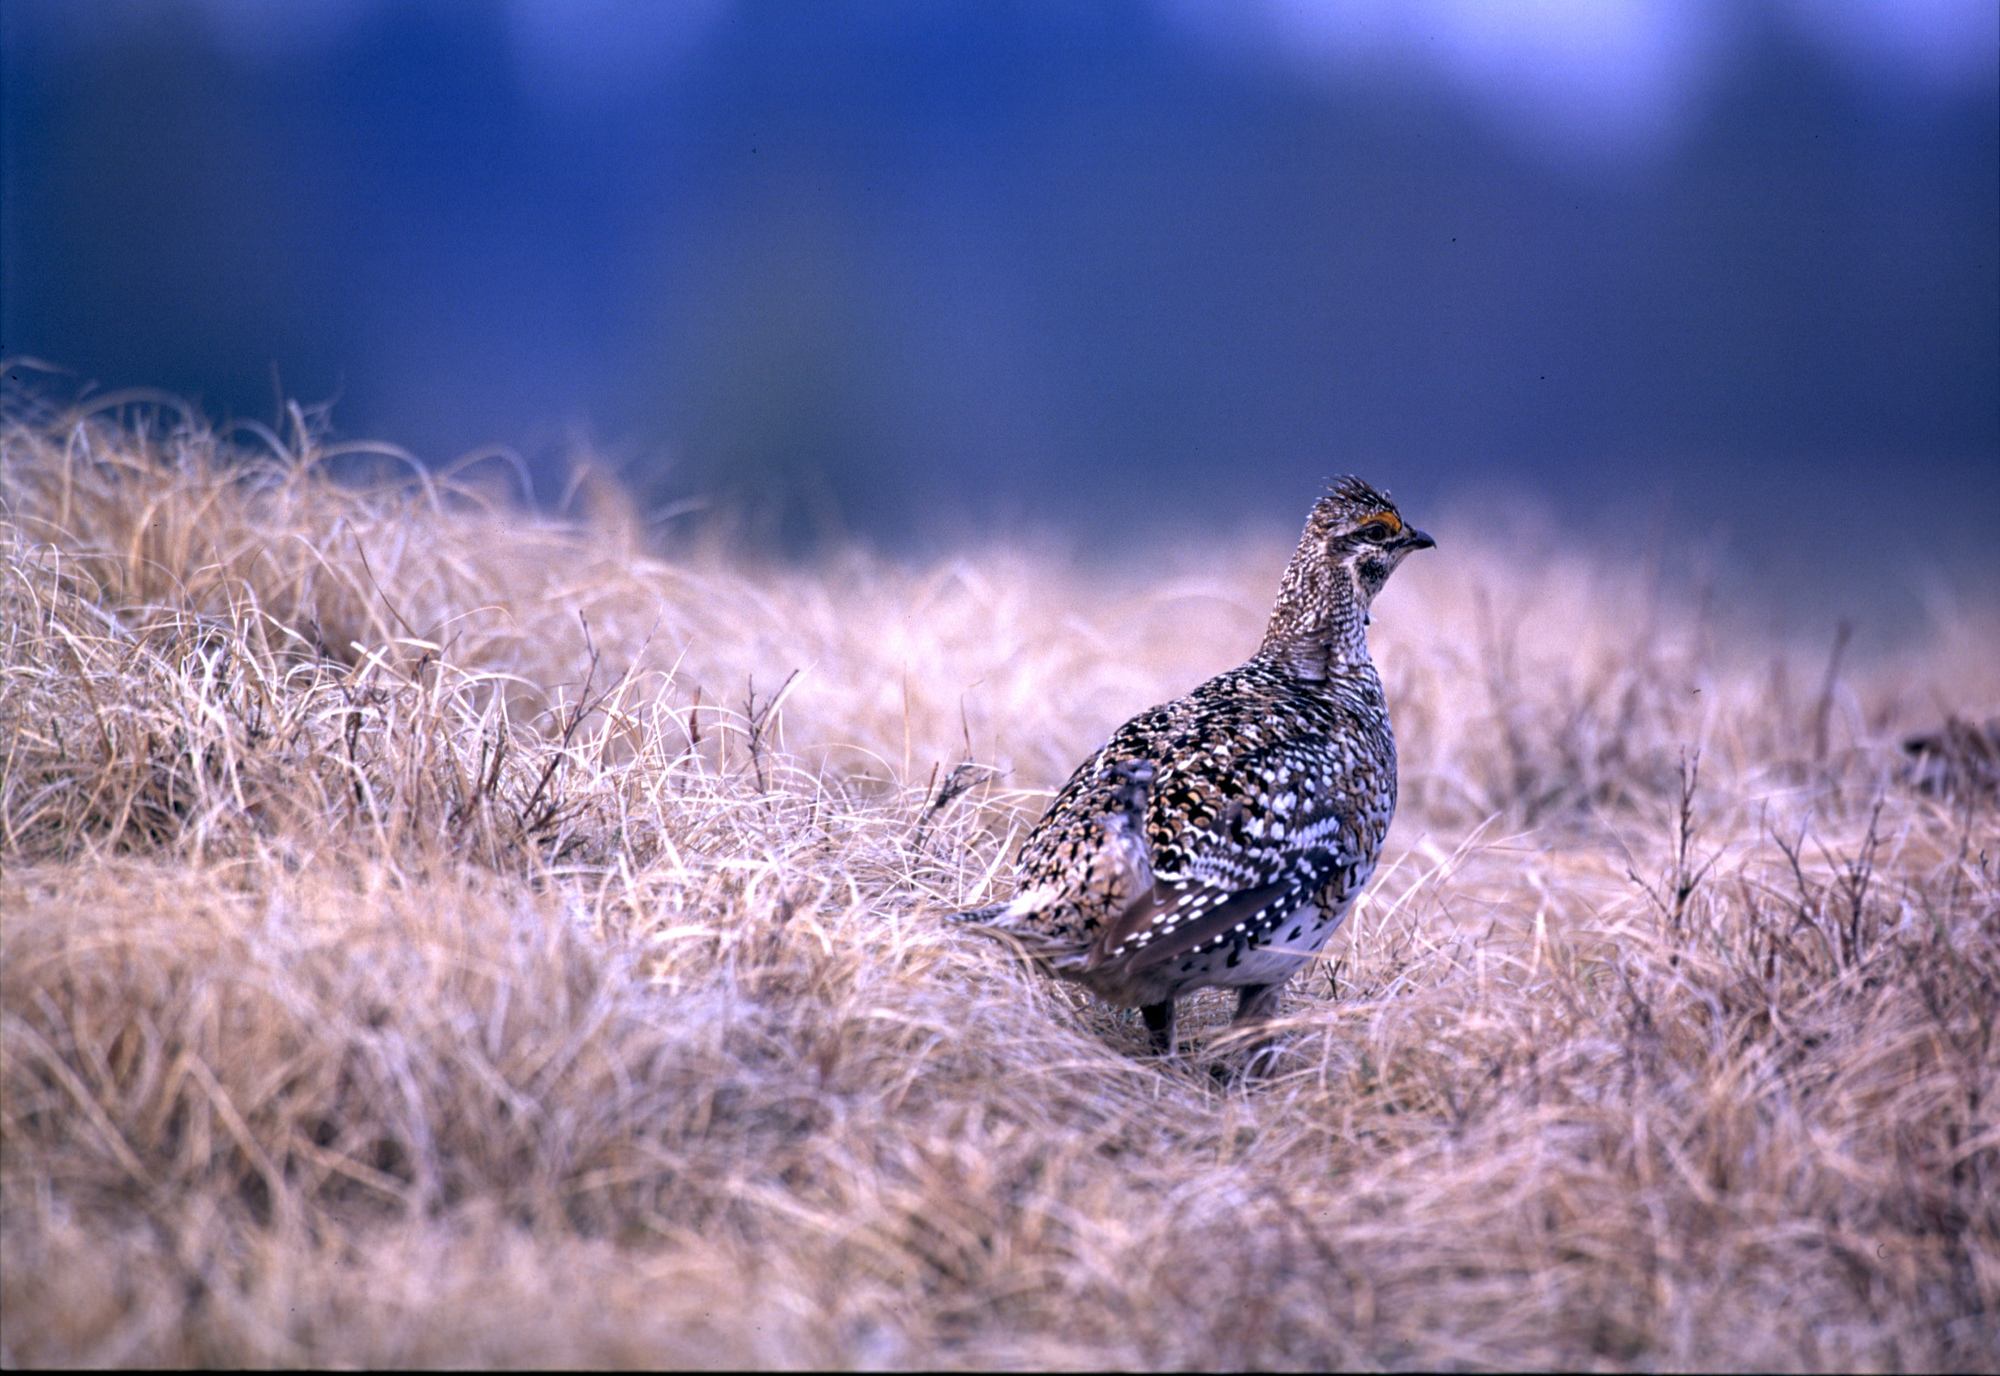 Sharp-tailed grouse are found in greatest concentrations in the Upper Peninsula in Chippewa and Schoolcraft counties.